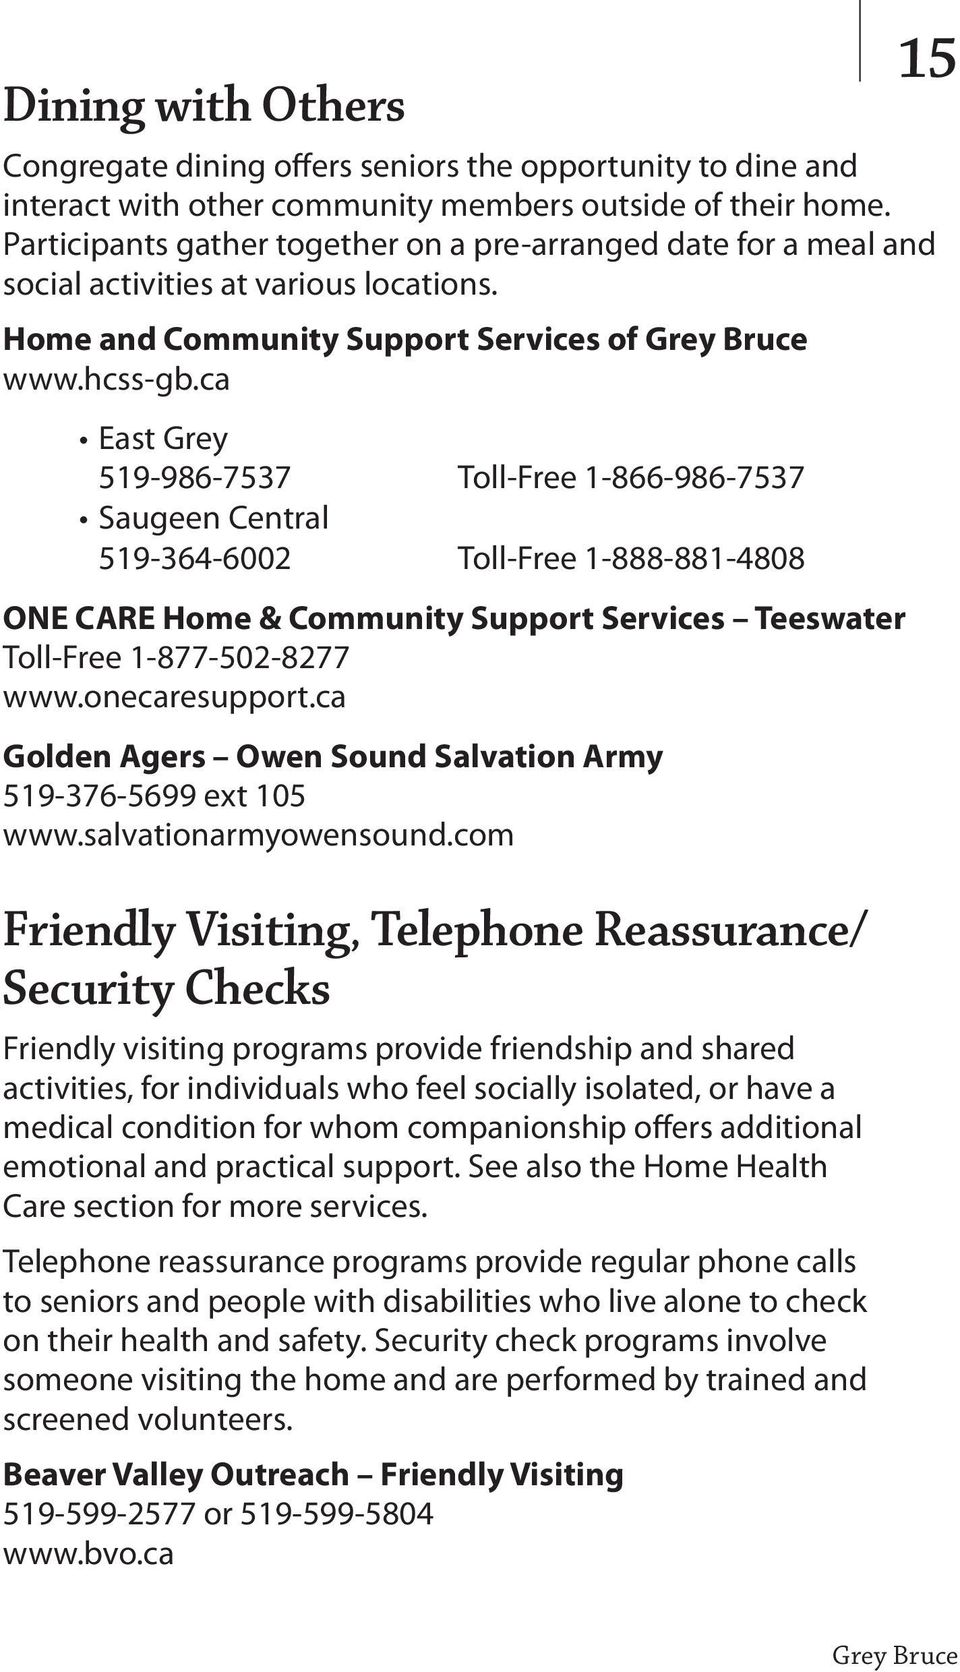 ca East Grey 519-986-7537 Toll-Free 1-866-986-7537 Saugeen Central 519-364-6002 Toll-Free 1-888-881-4808 ONE CARE Home & Community Support Services Teeswater Toll-Free 1-877-502-8277 www.